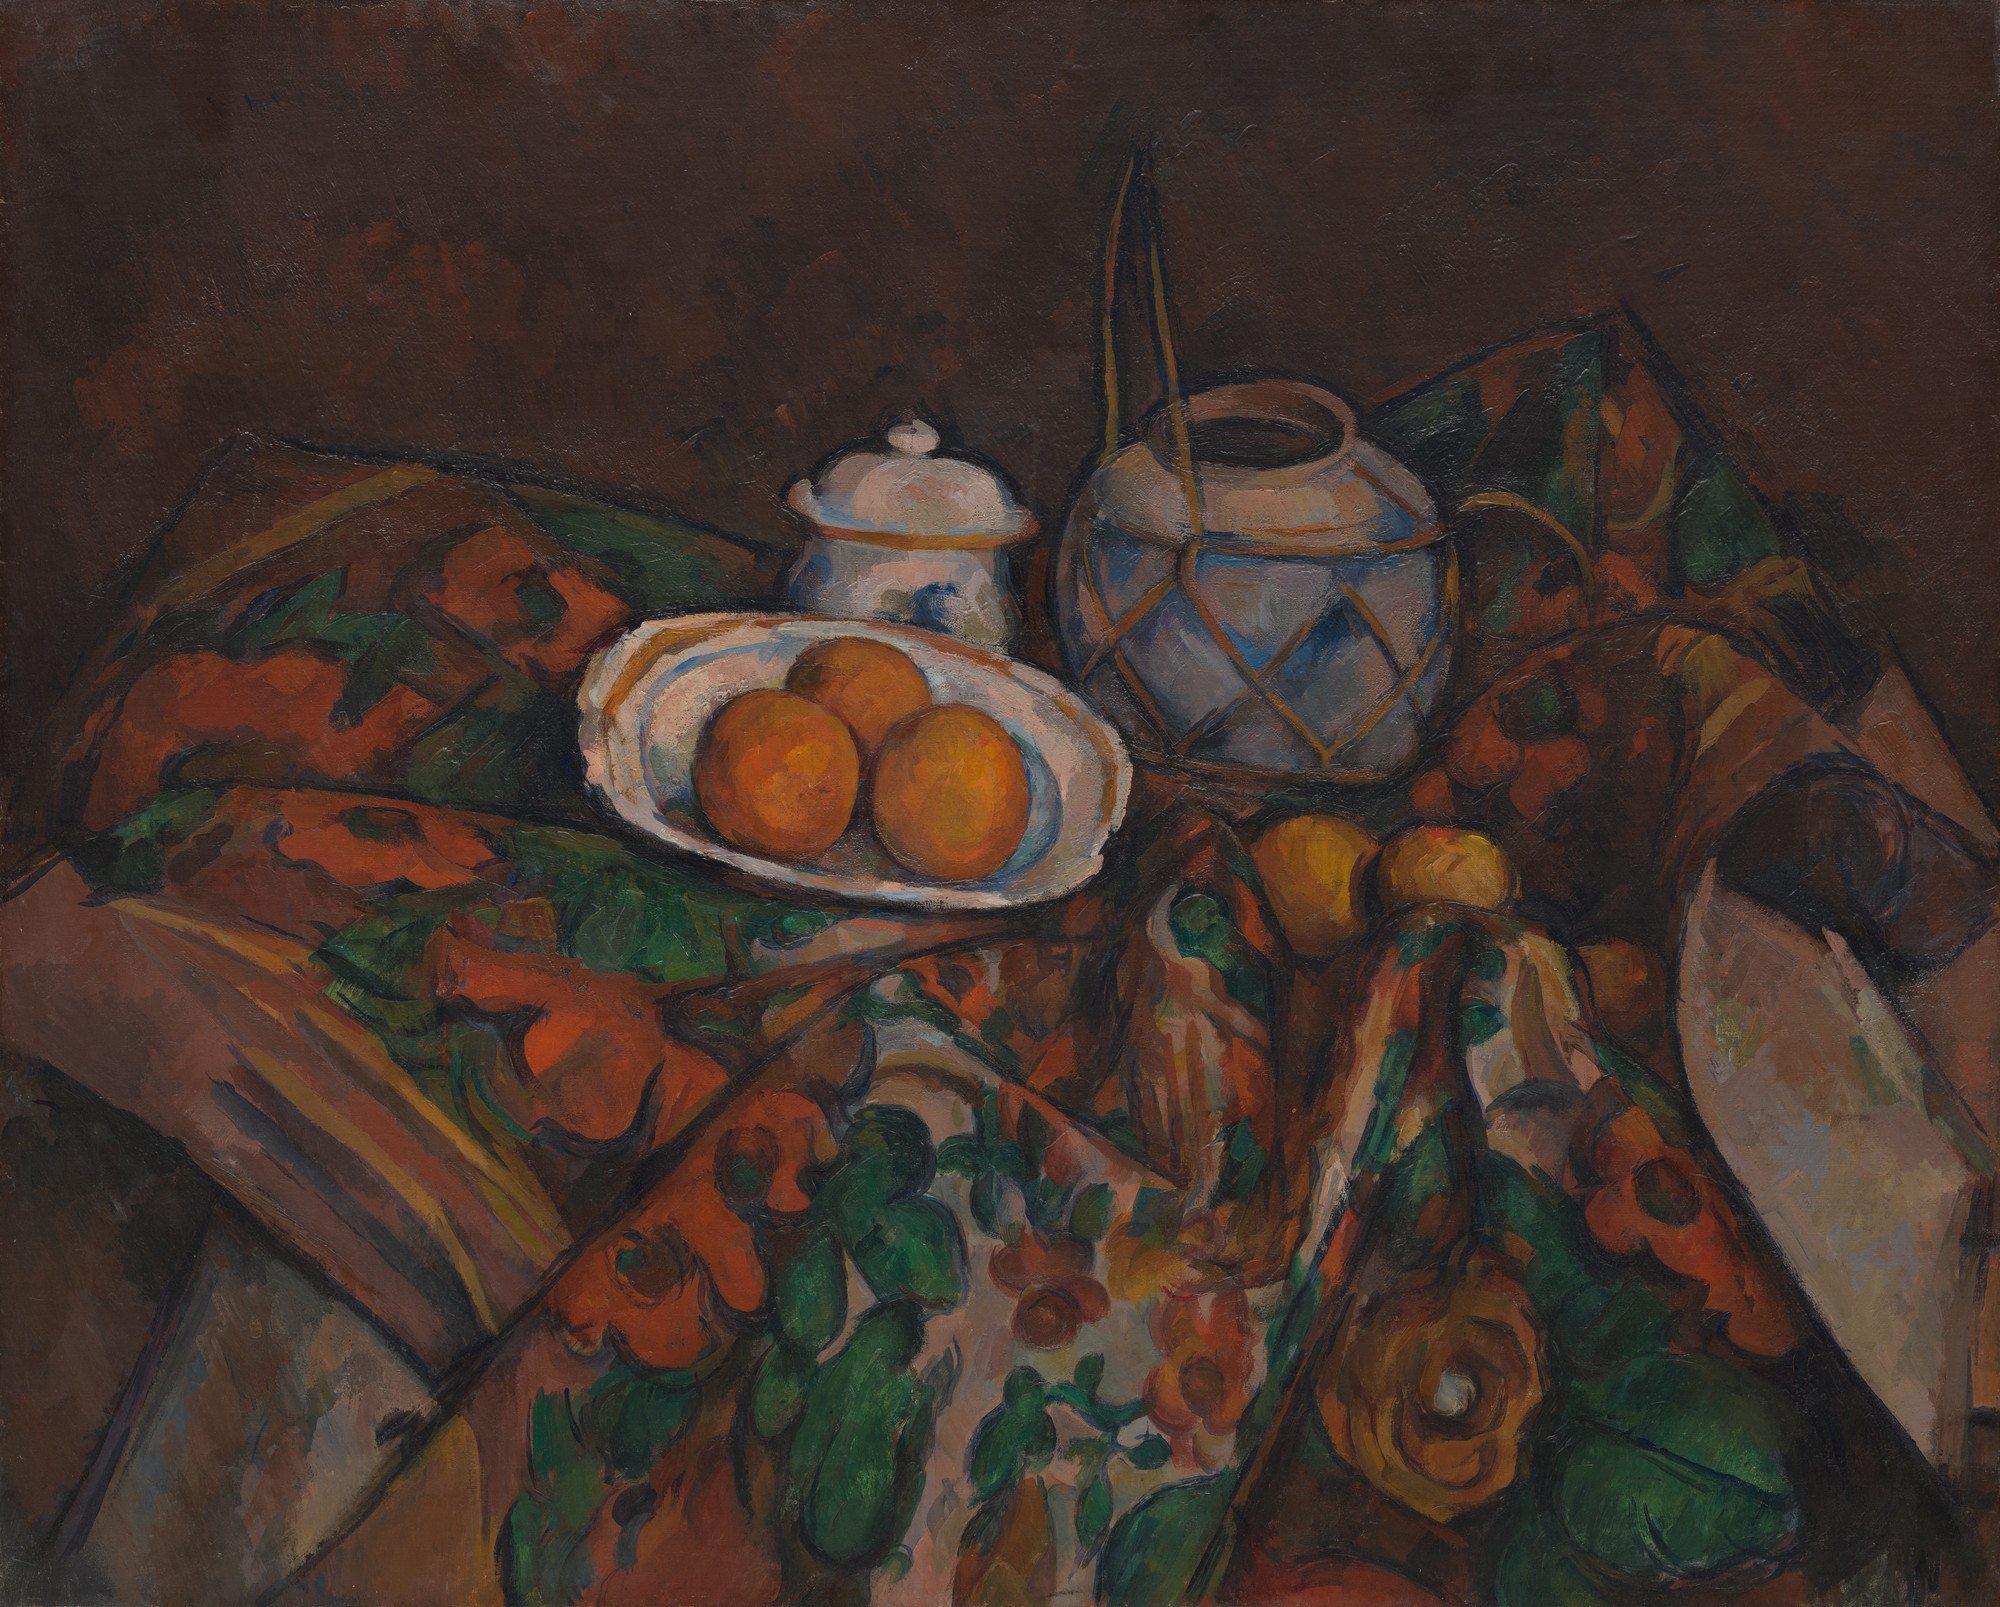 Paul Cézanne. Still Life with Ginger Jar, Sugar Bowl, and Oranges. 1902-06